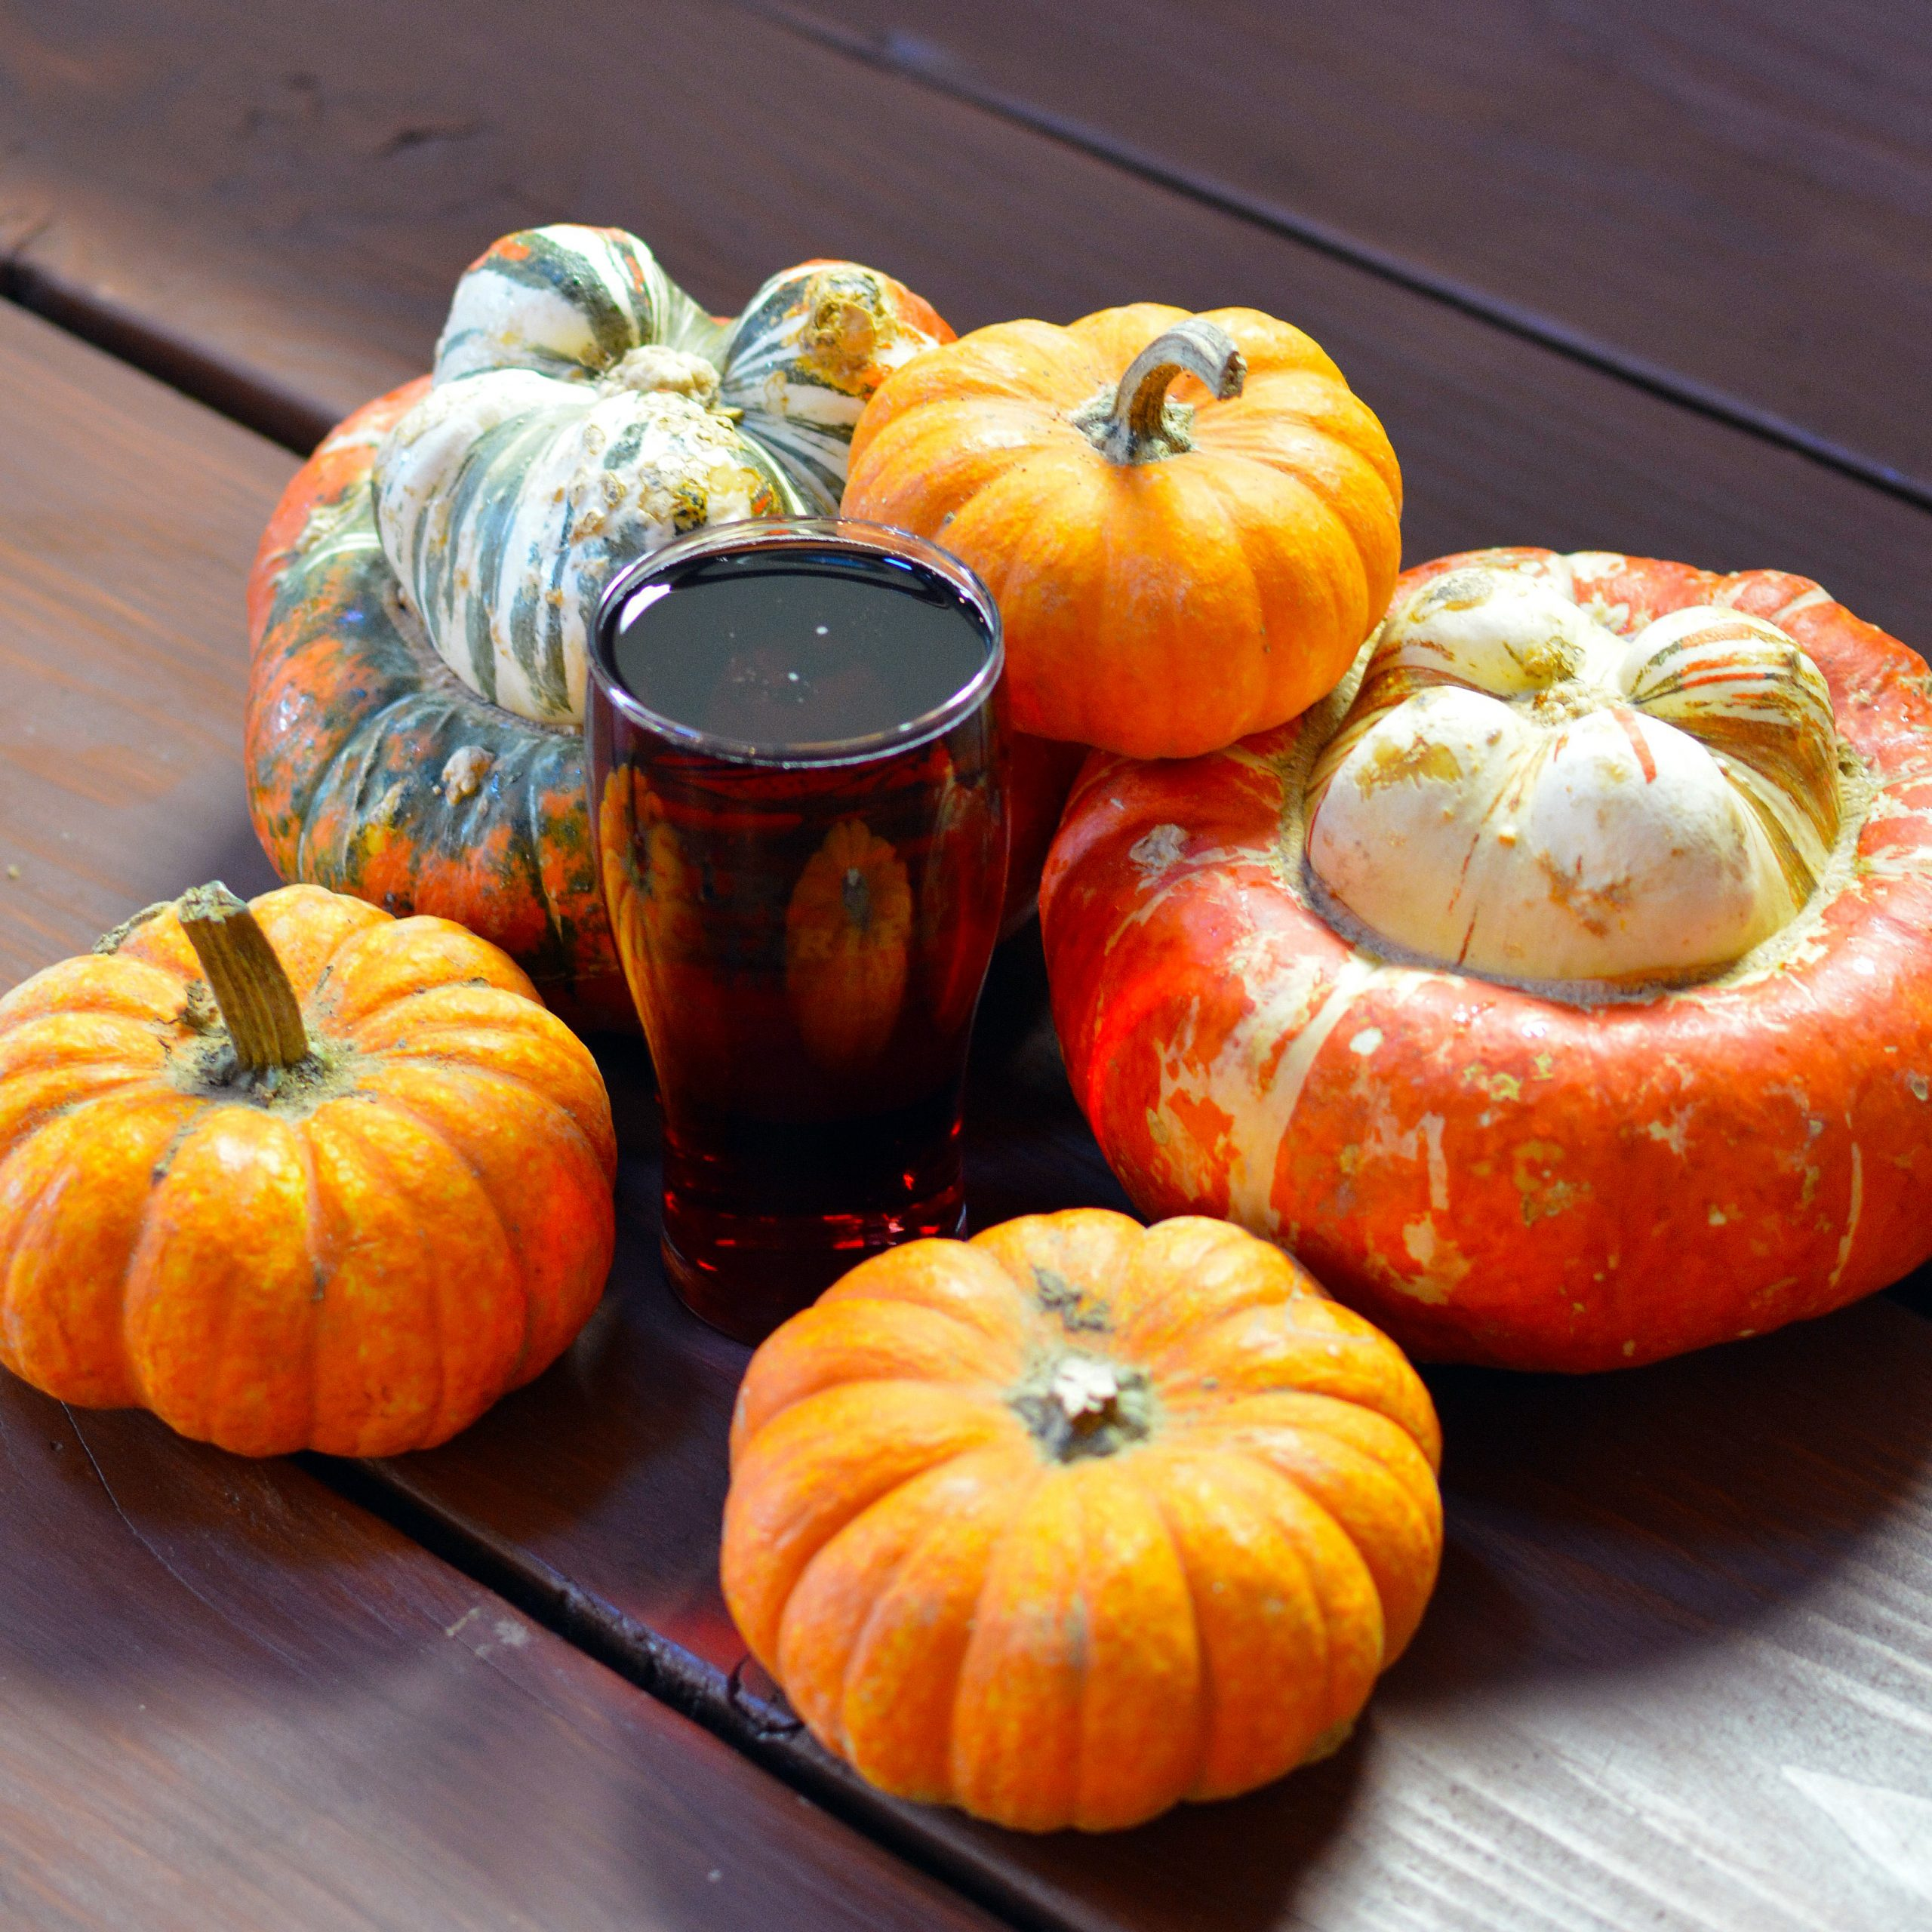 Photo of a glass of Cranberry Cider surrounded by orange squashes and pumpkins